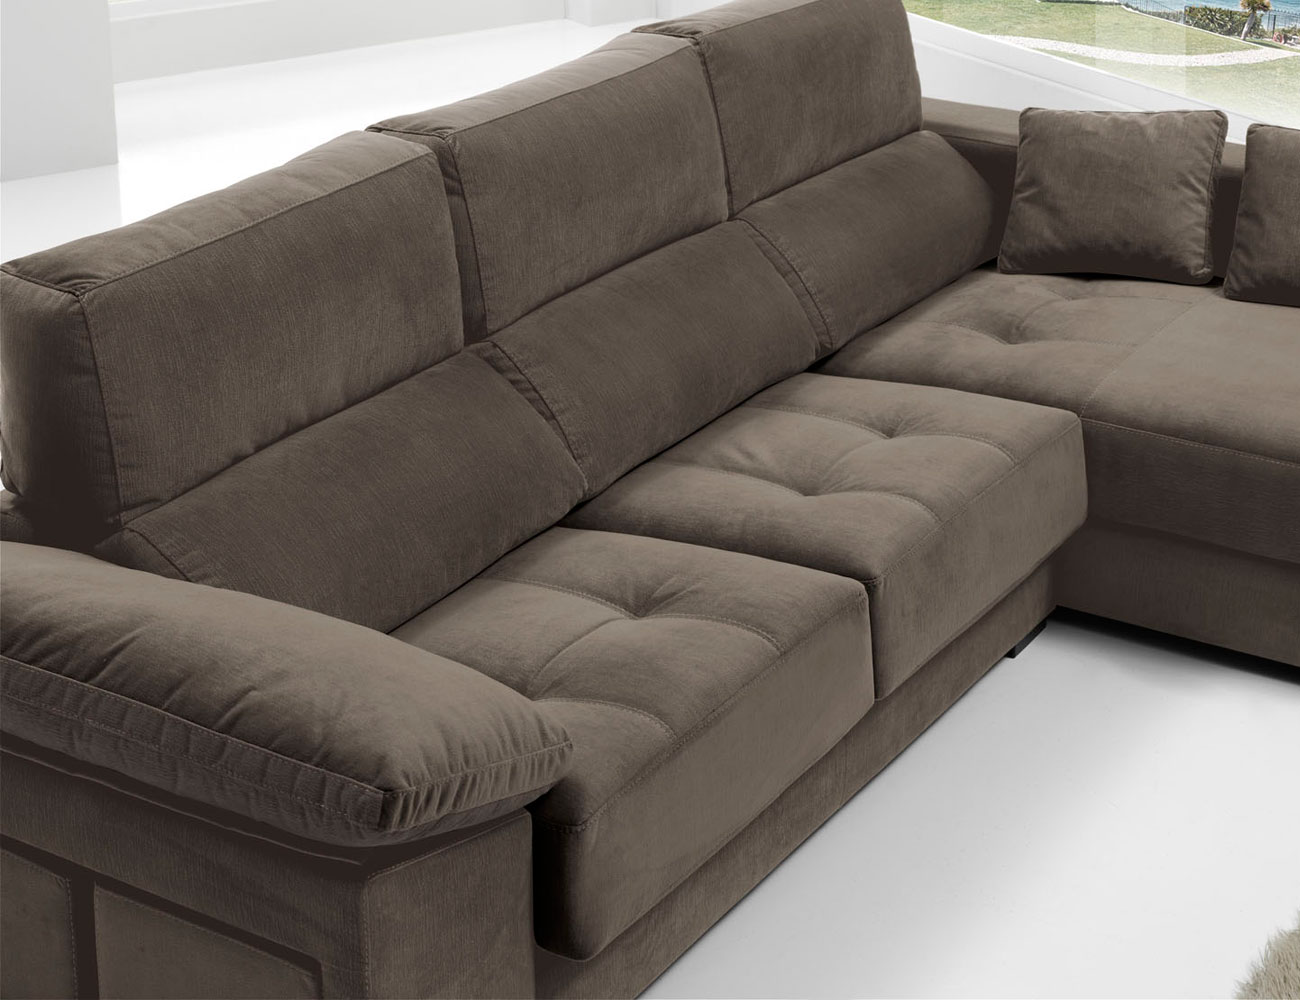 Sofa chaiselongue anti manchas bering pouf 276